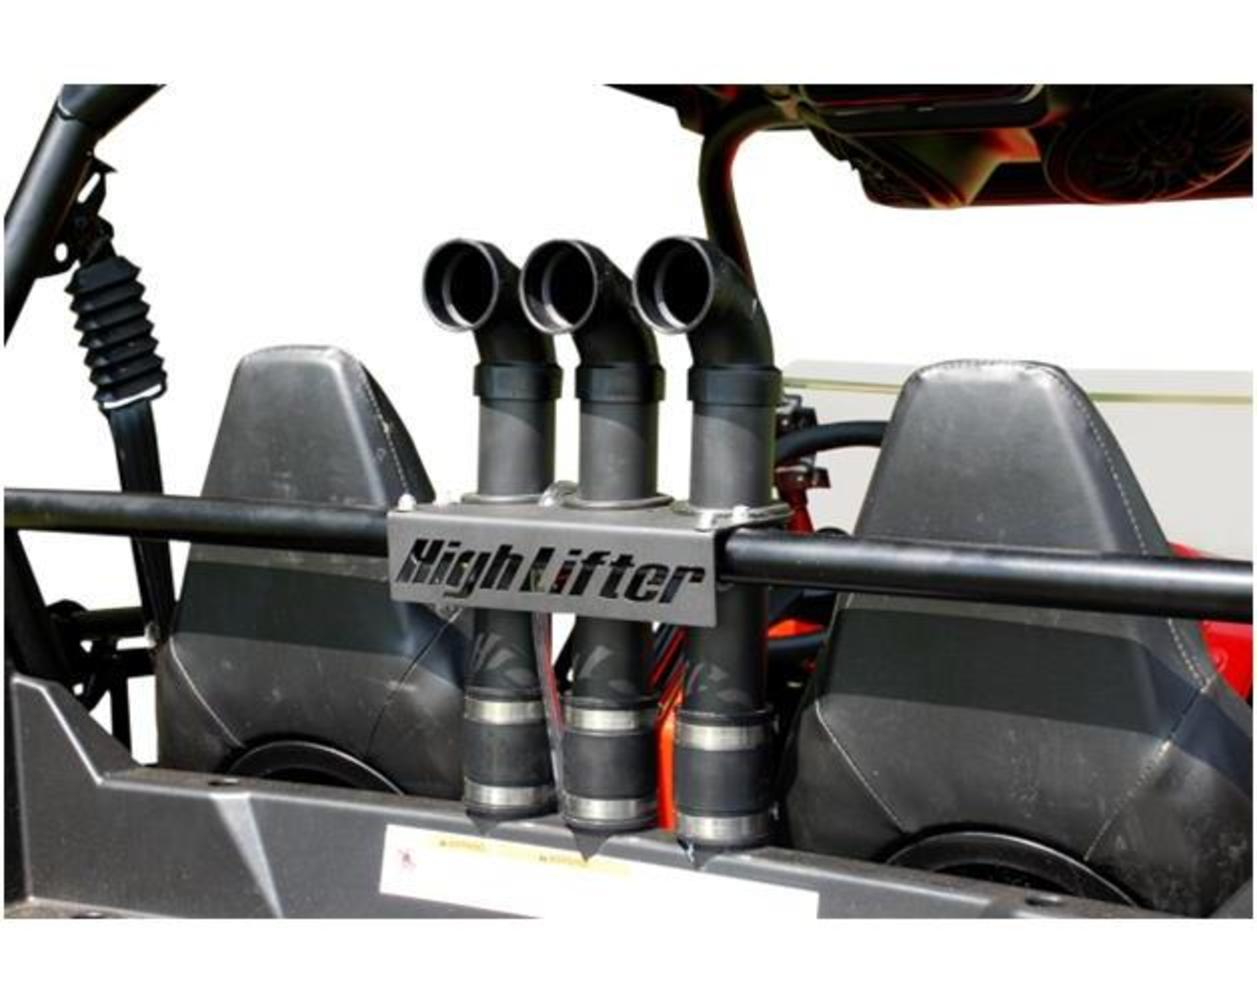 High Lifter Products SNORK-RZRS Diver Down Riser Snorkel by High Lifter Products